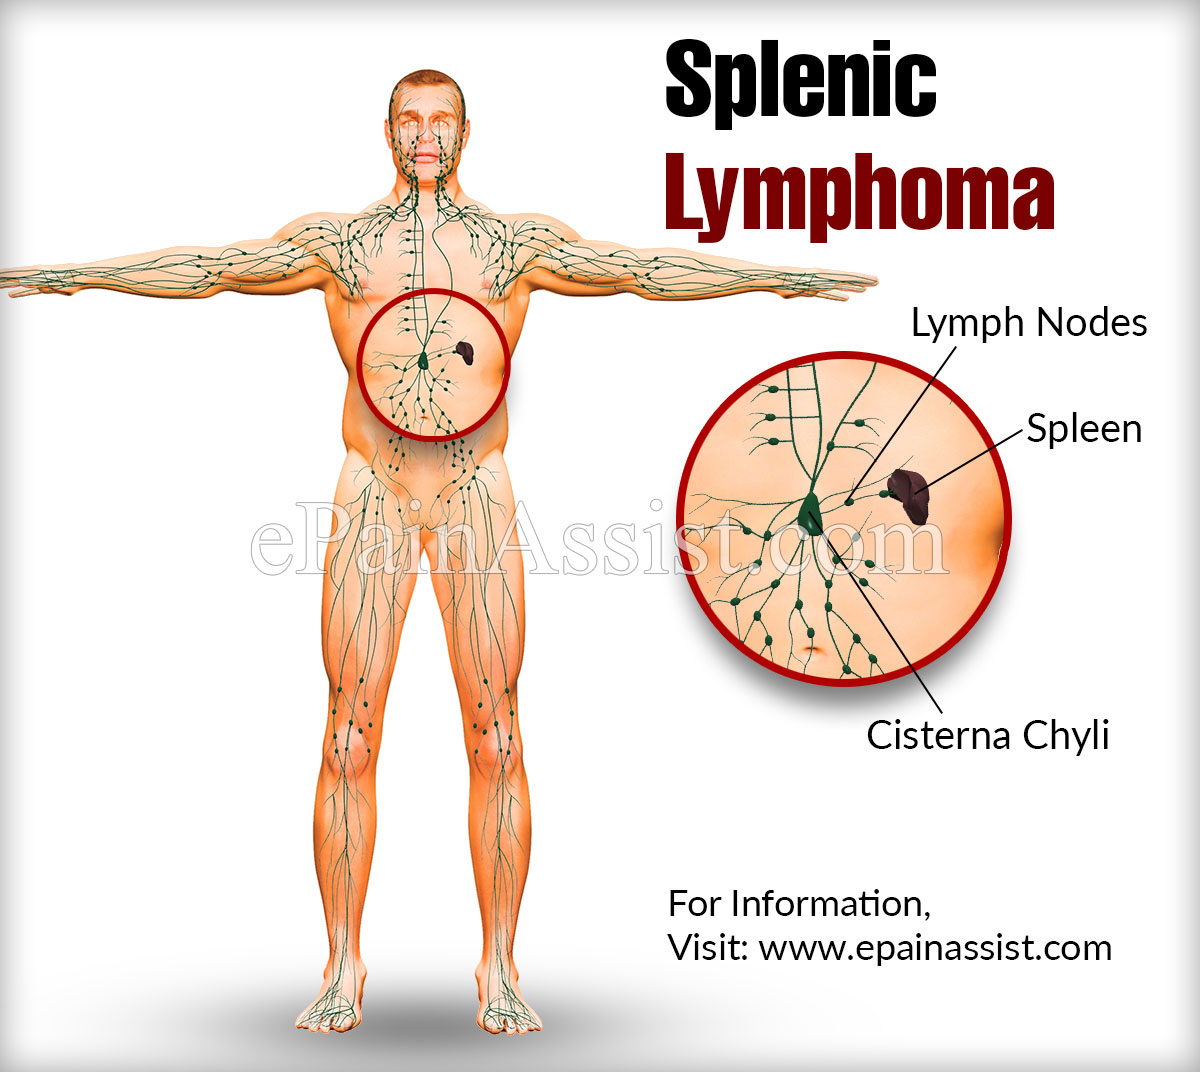 Splenic Lymphoma